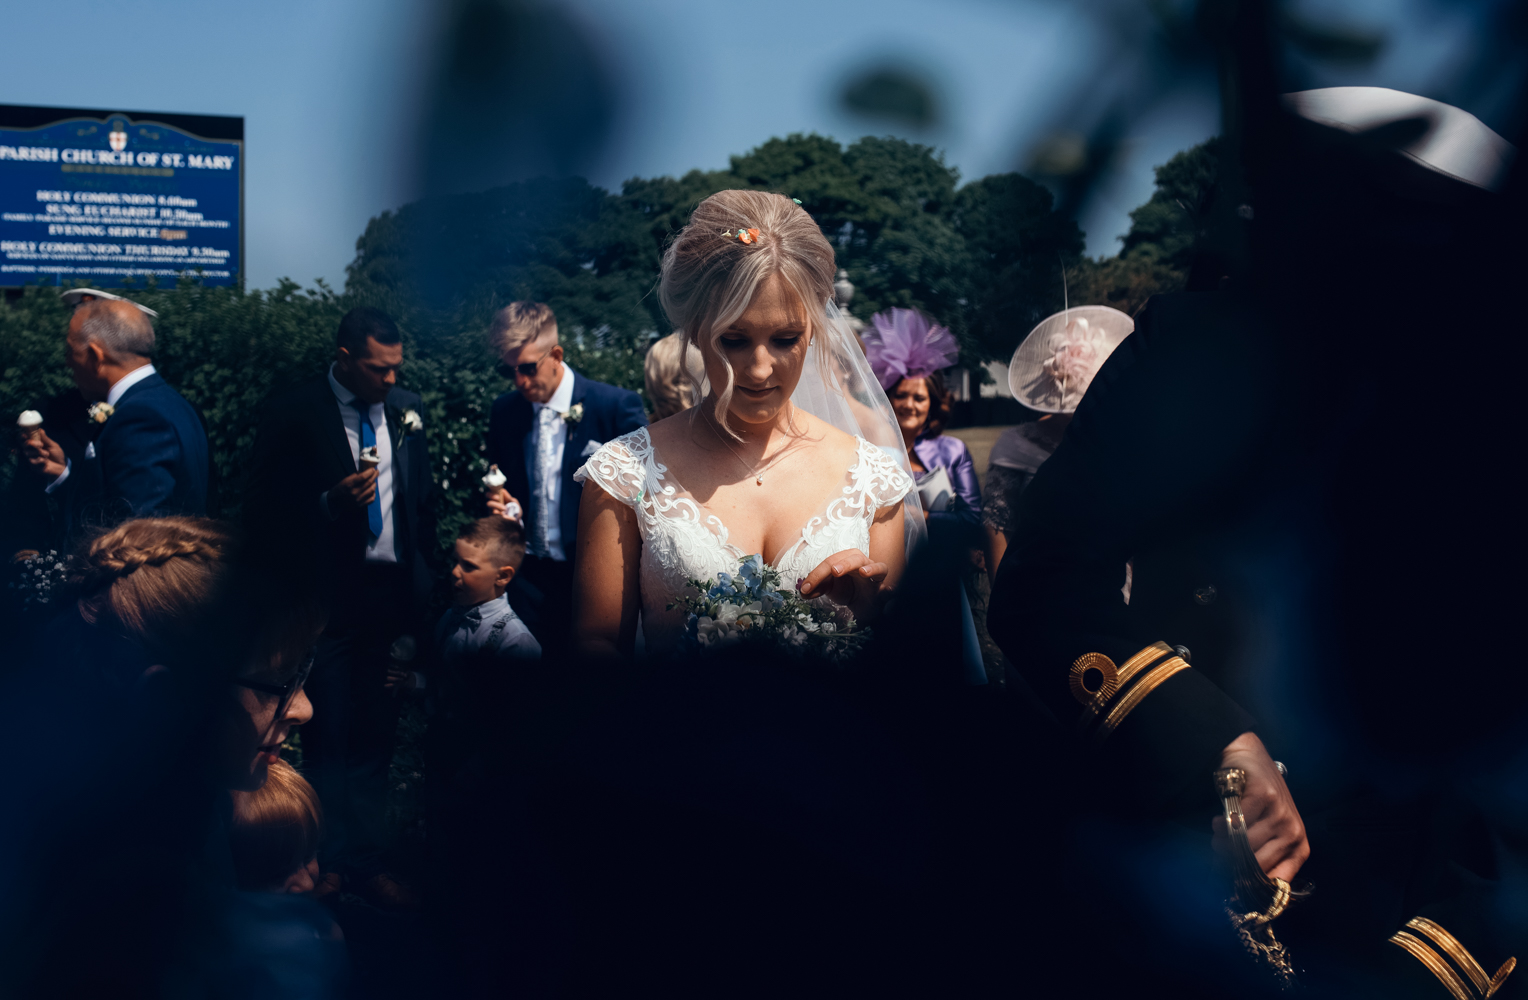 A photo of the bride through a wrought iron gate at the church after the ceremony